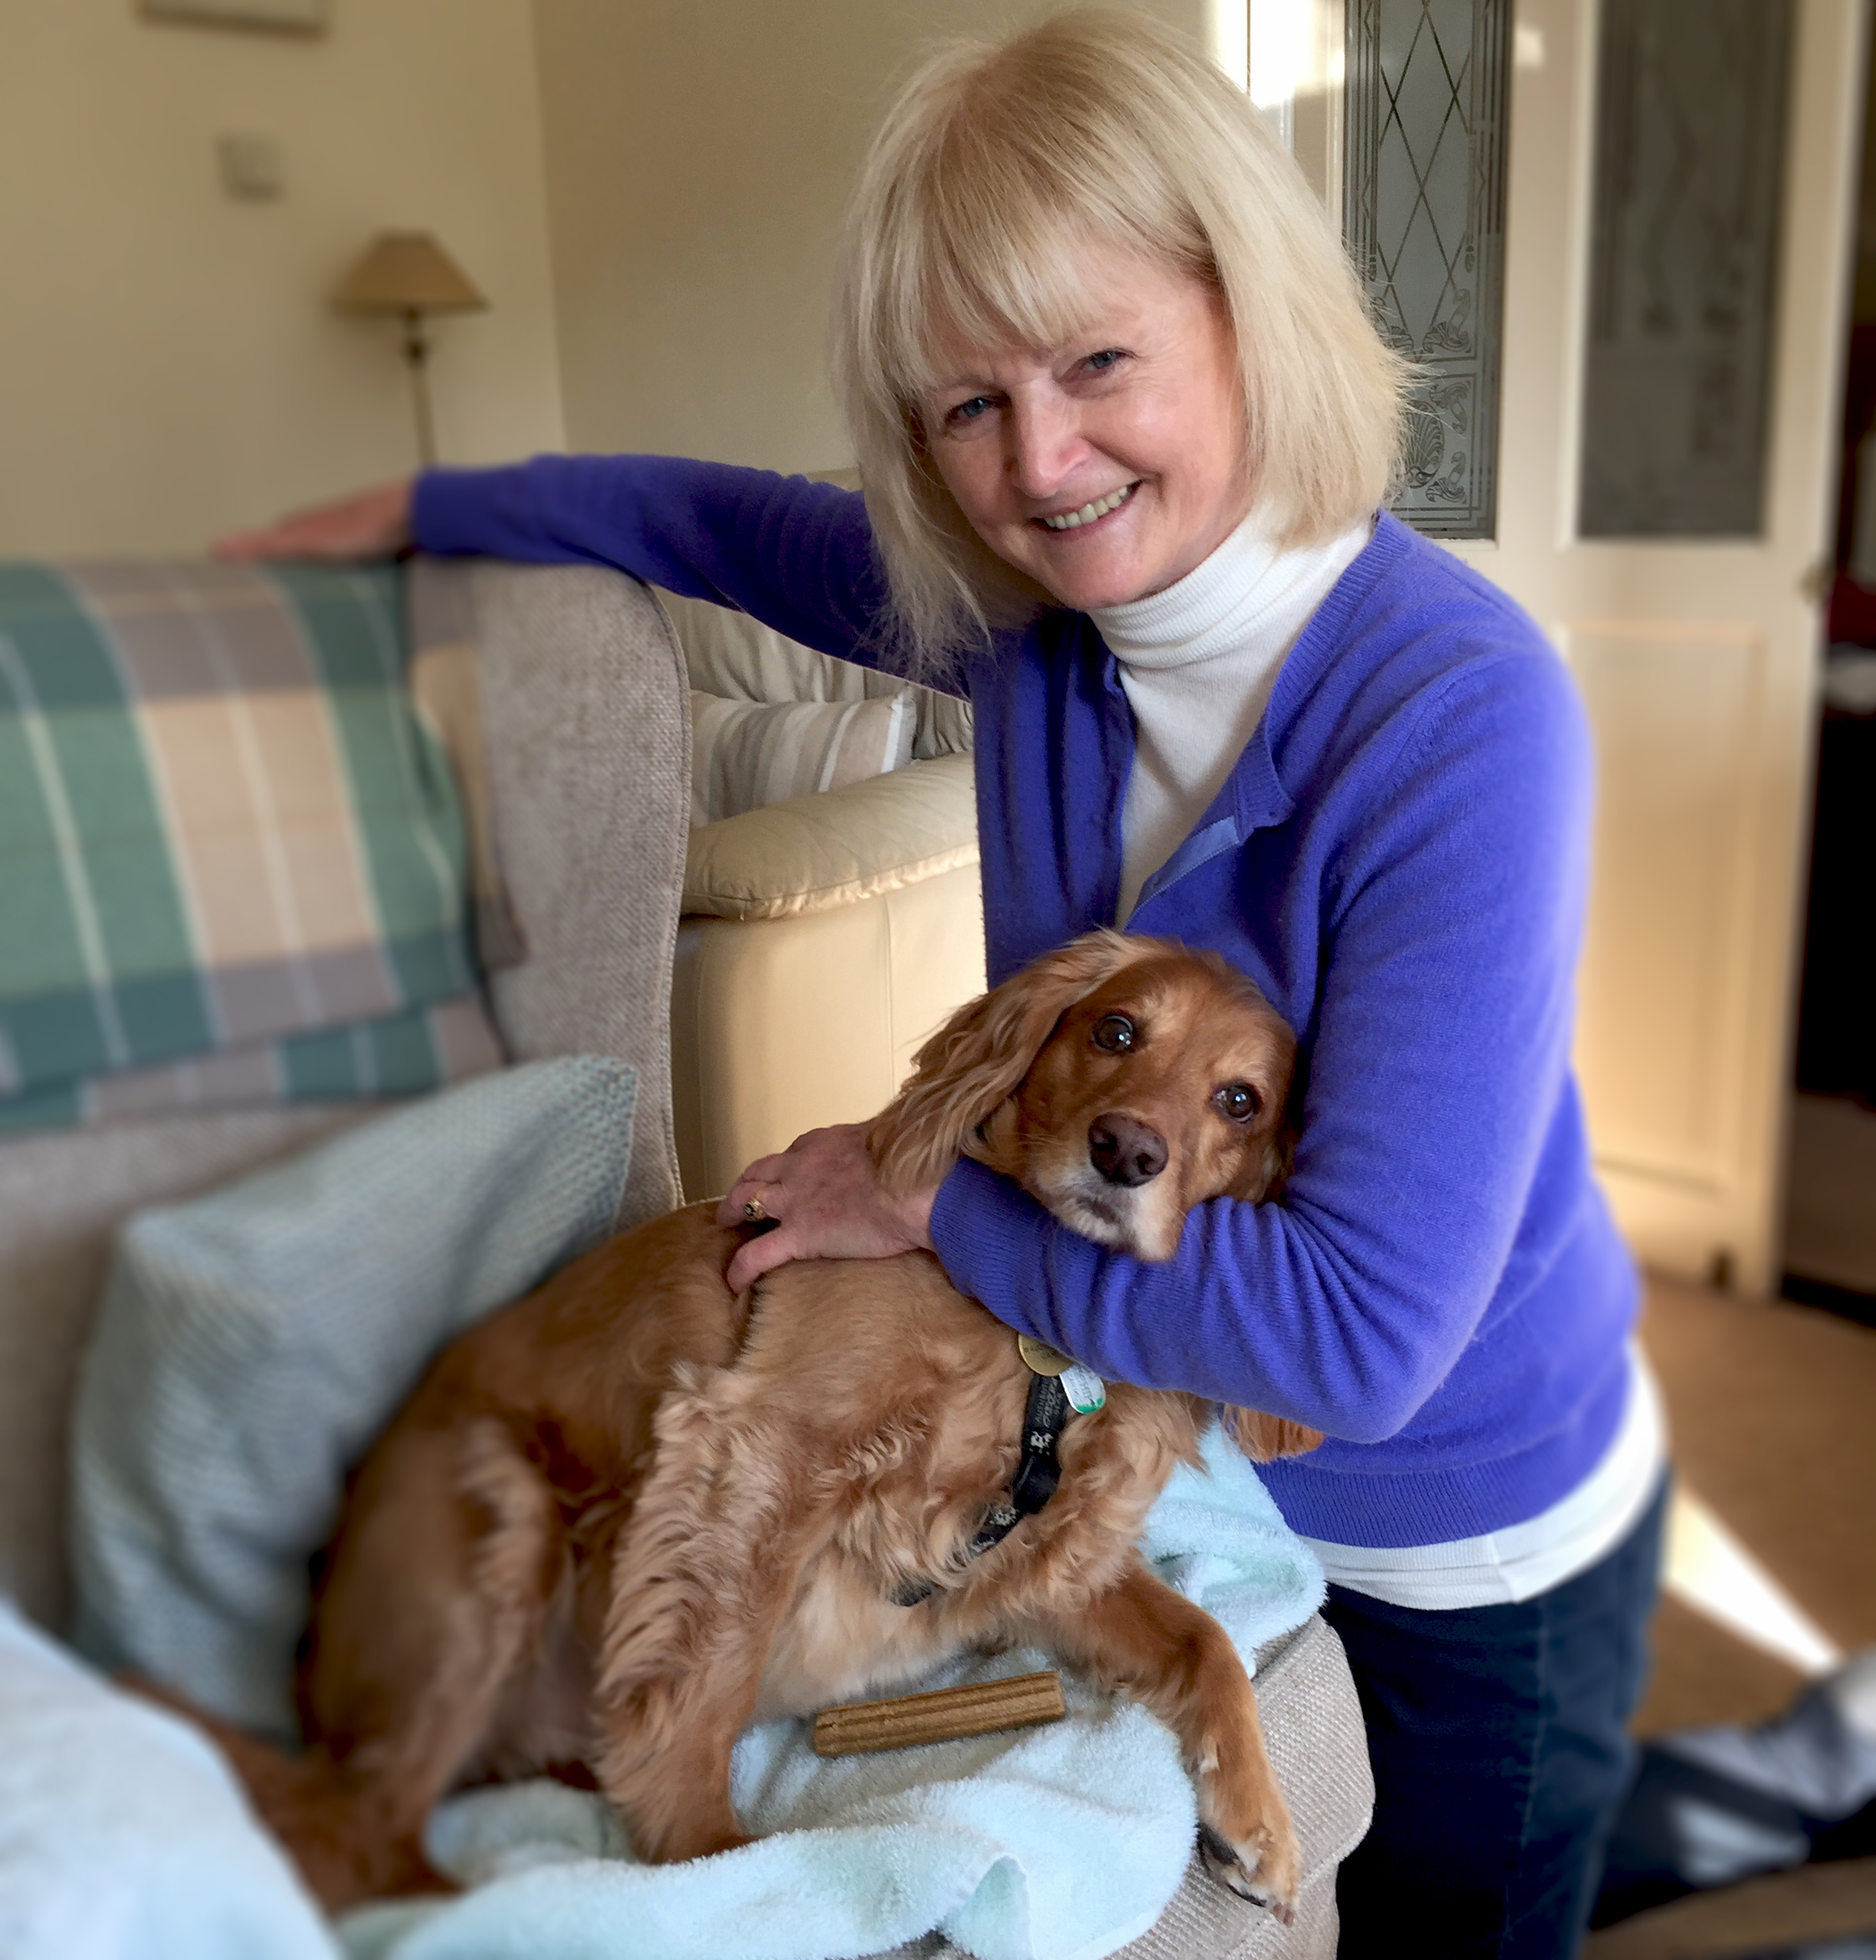 West Sussex Dog Carer Pam enjoying a cuddle with her guest dog Charlie